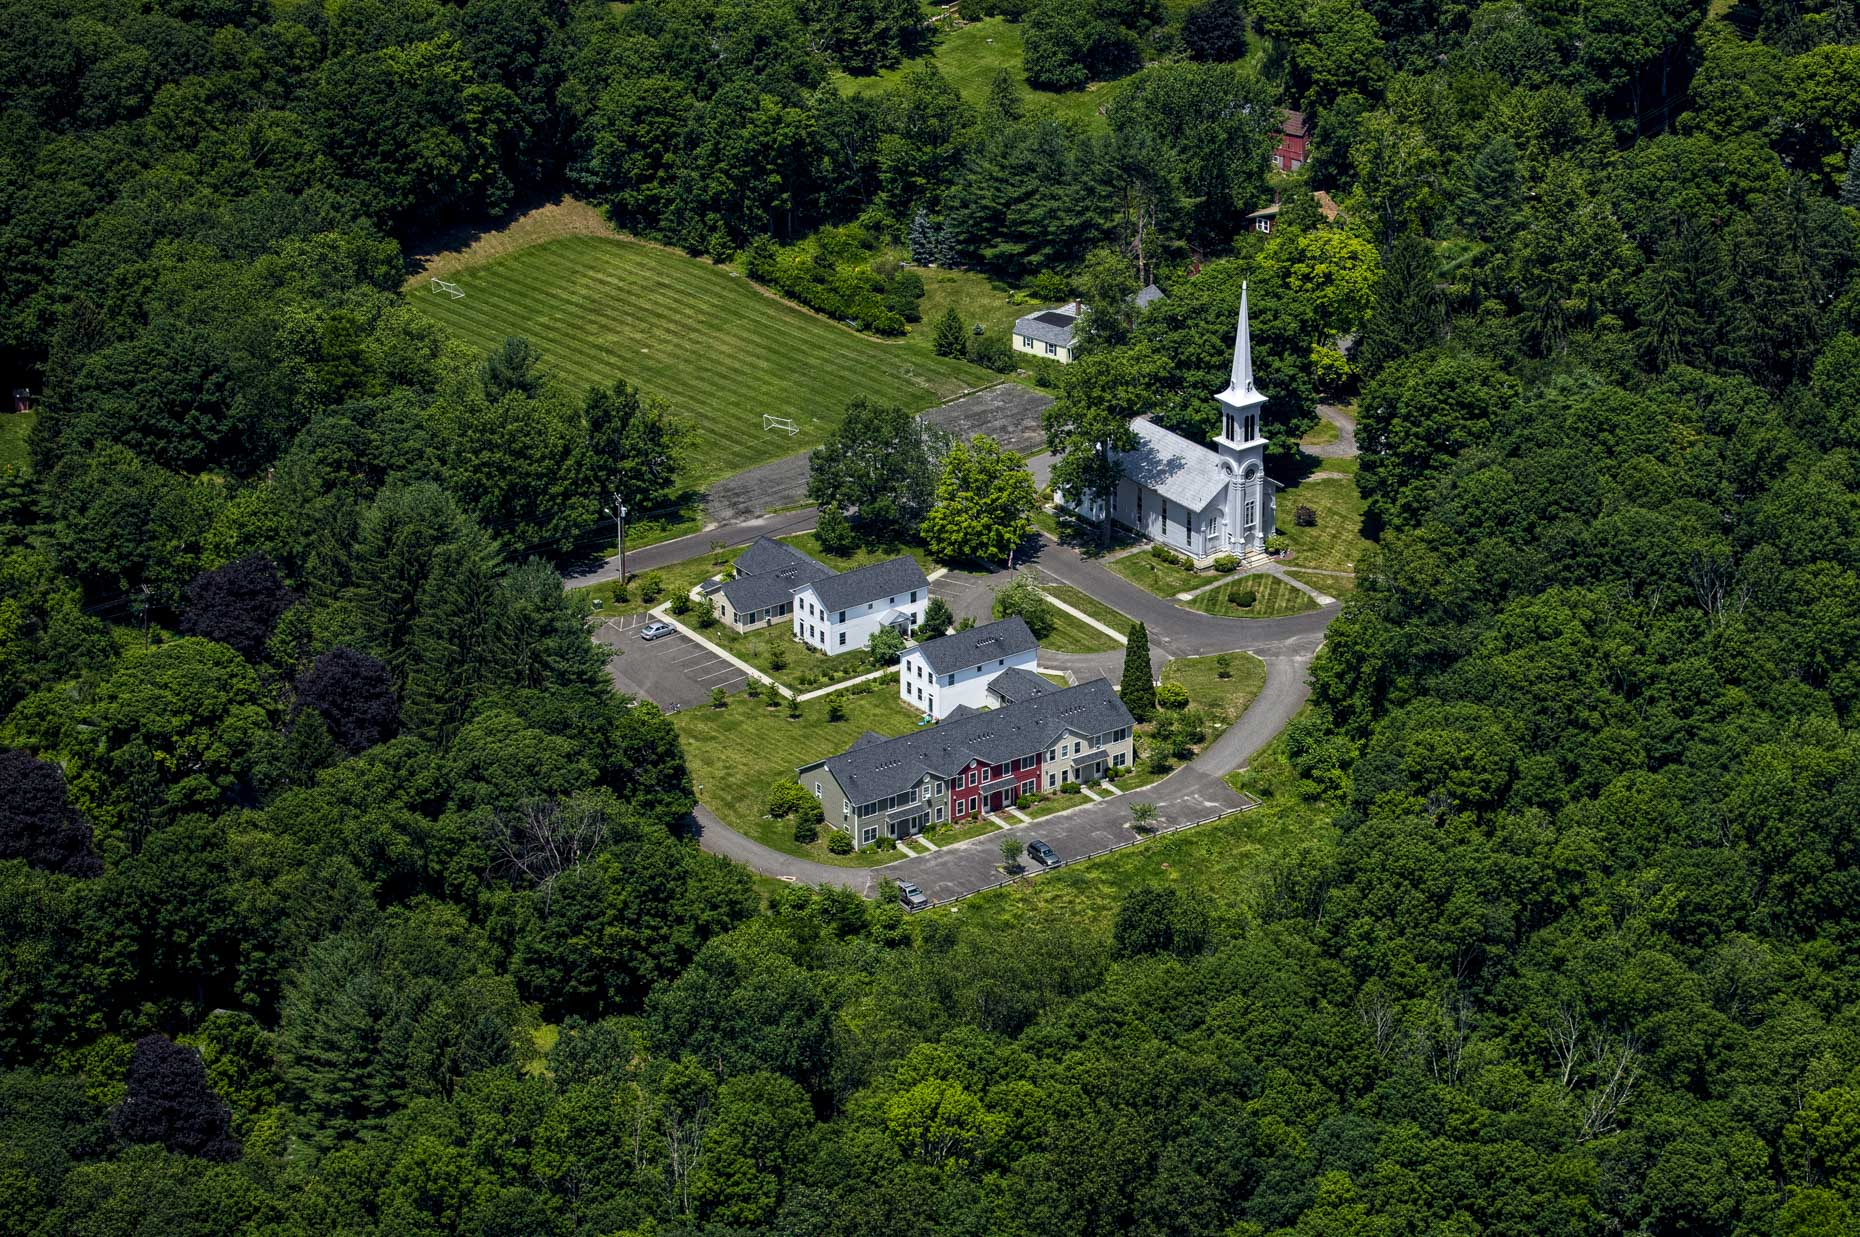 Fairfield county aerial photography Stefen Turner architectural photographer Easton